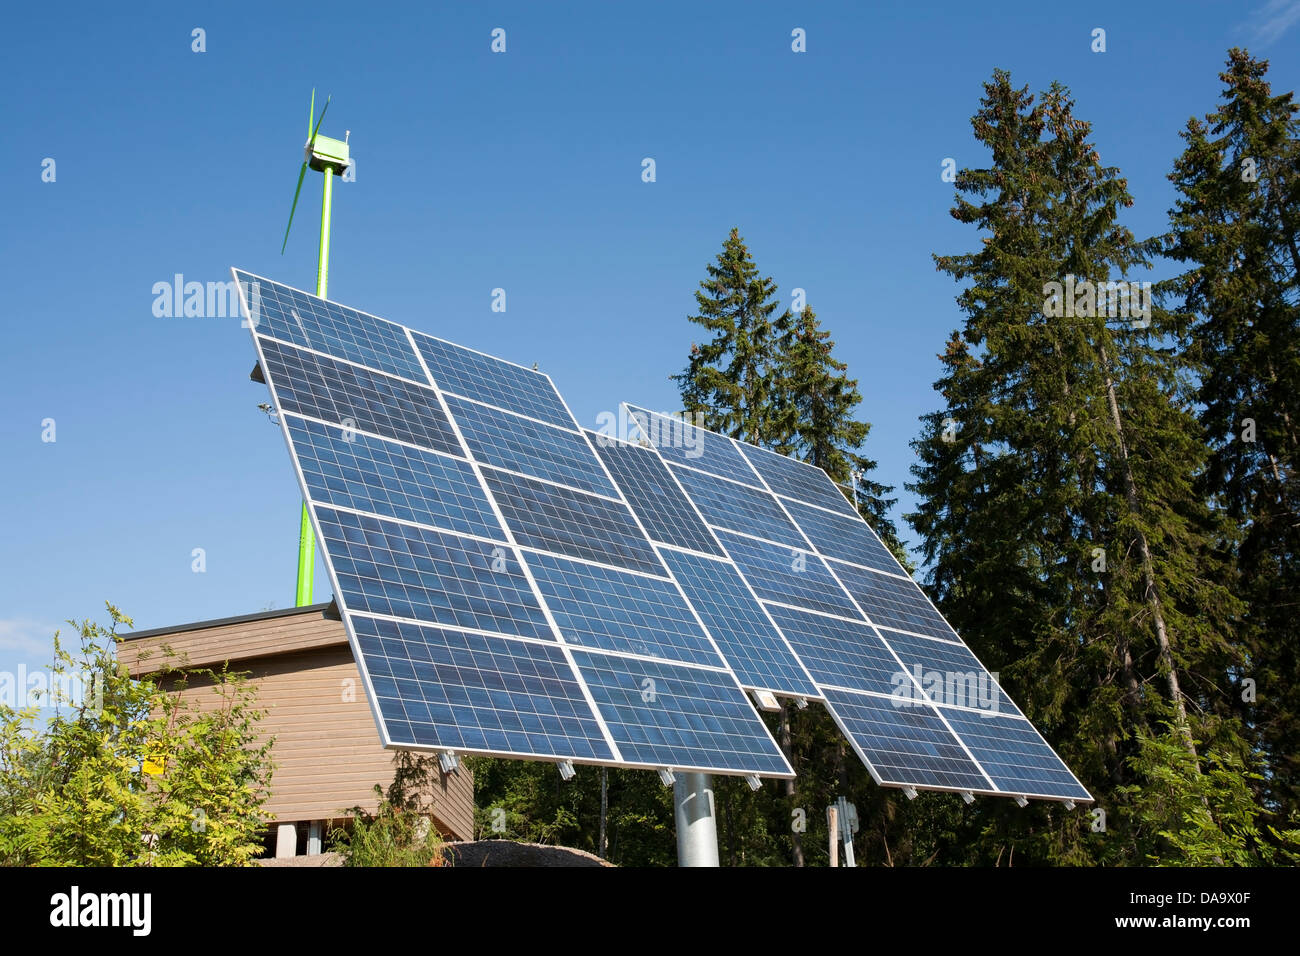 solar panels for electricity production, Lappeenranta Finland - Stock Image